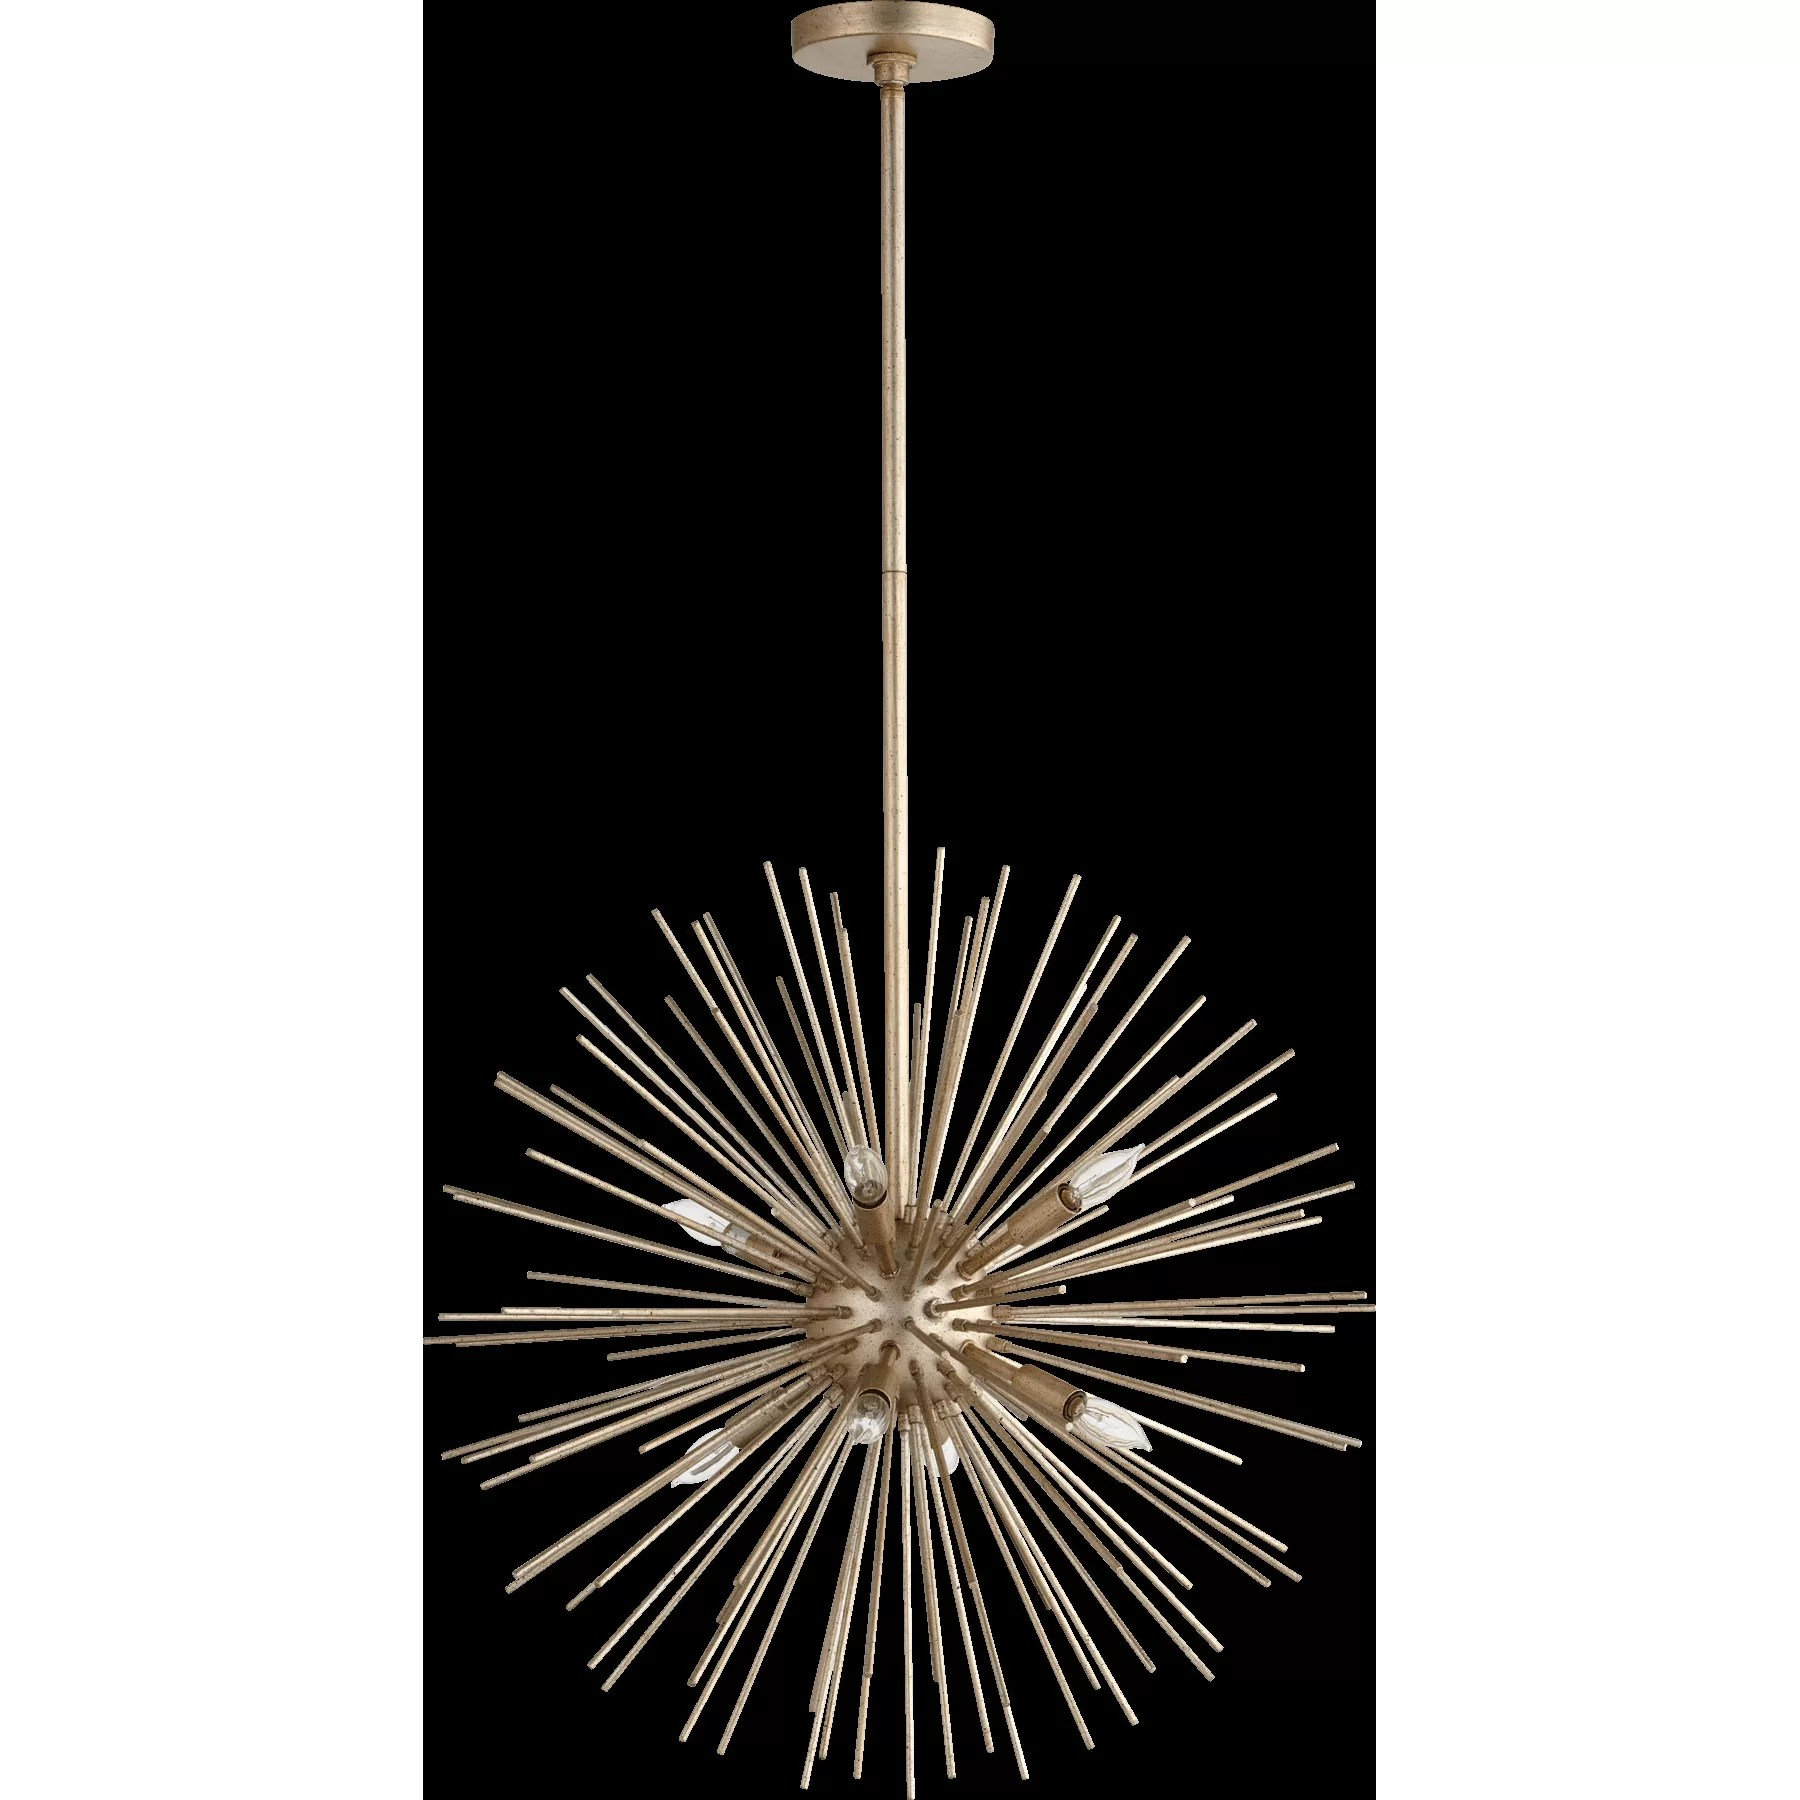 Quorum electra 8 light sputnik chandelier reviews wayfair